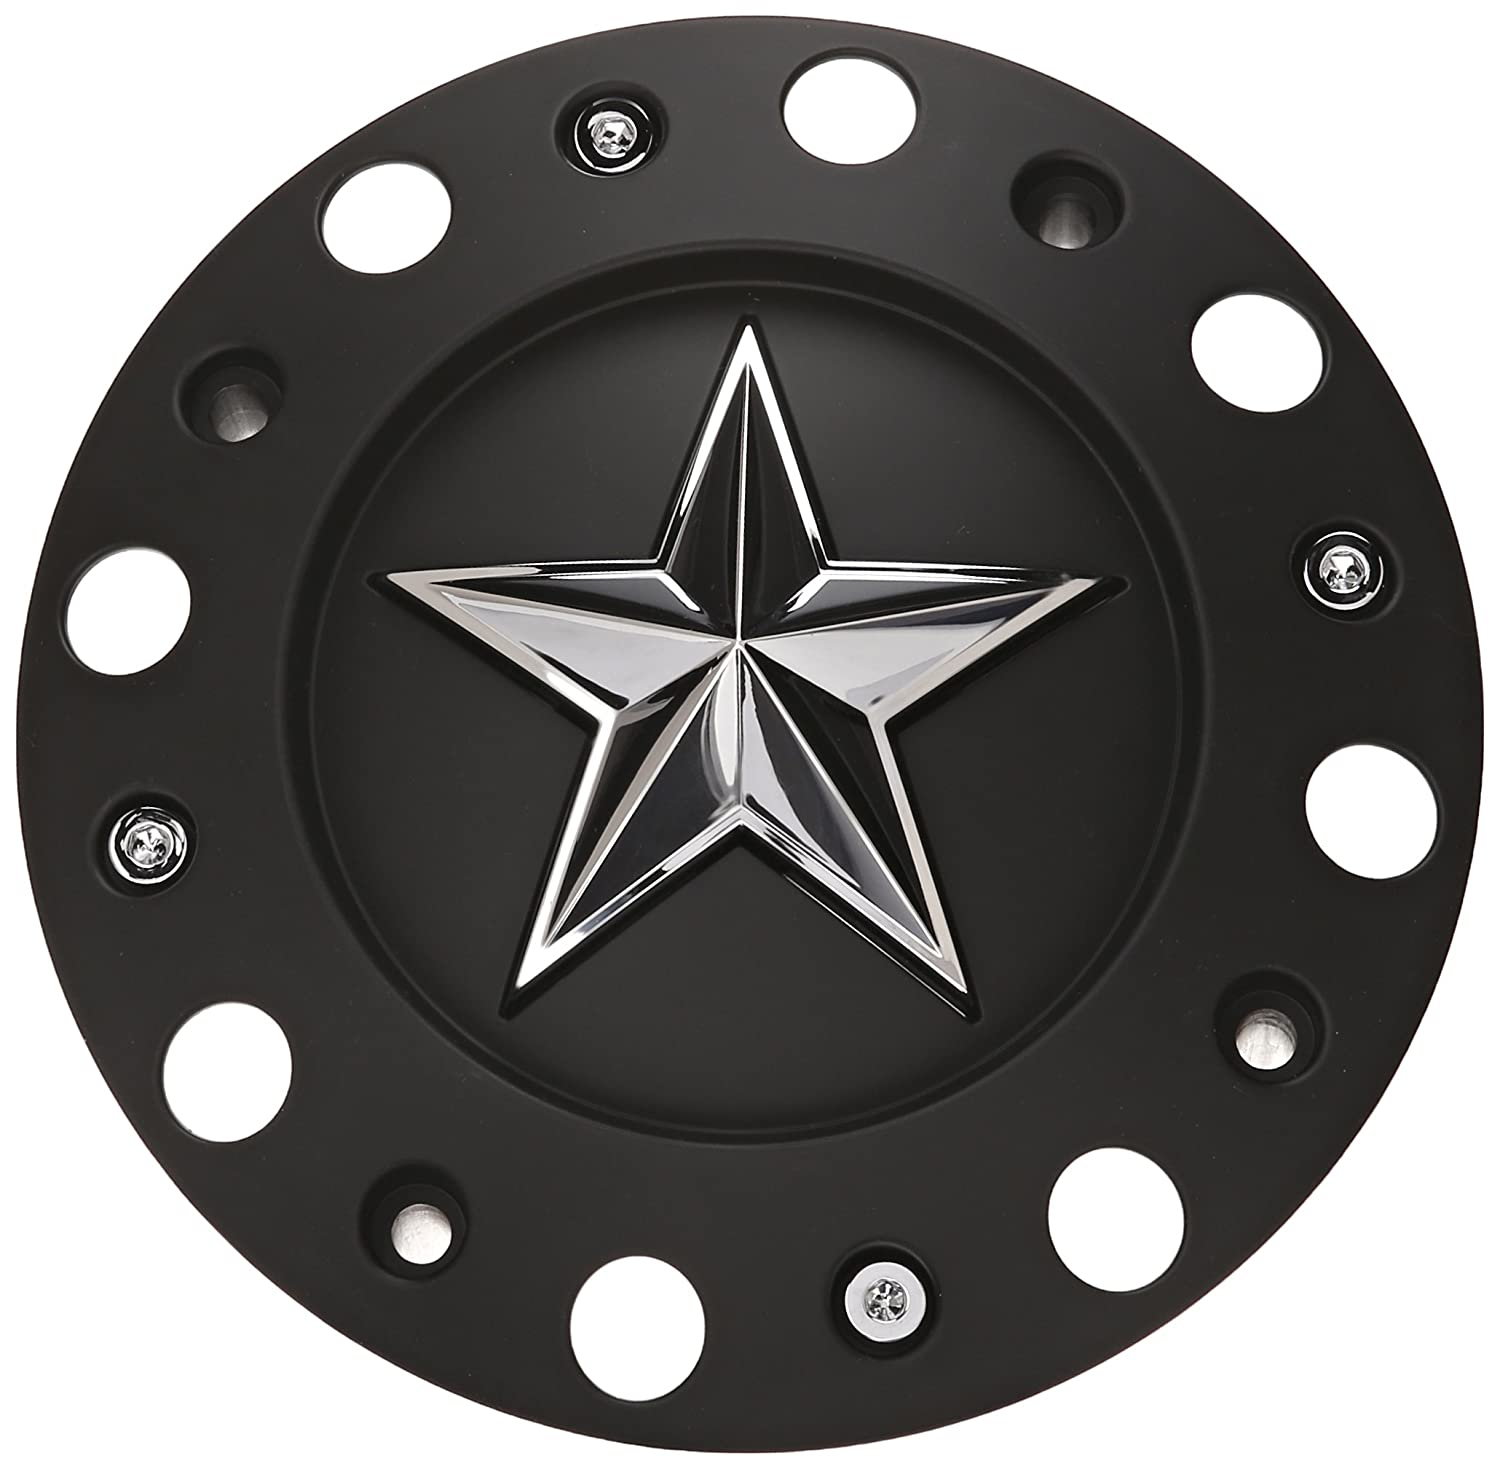 Wheel Pros 1000775B XD Series Black Center Cap